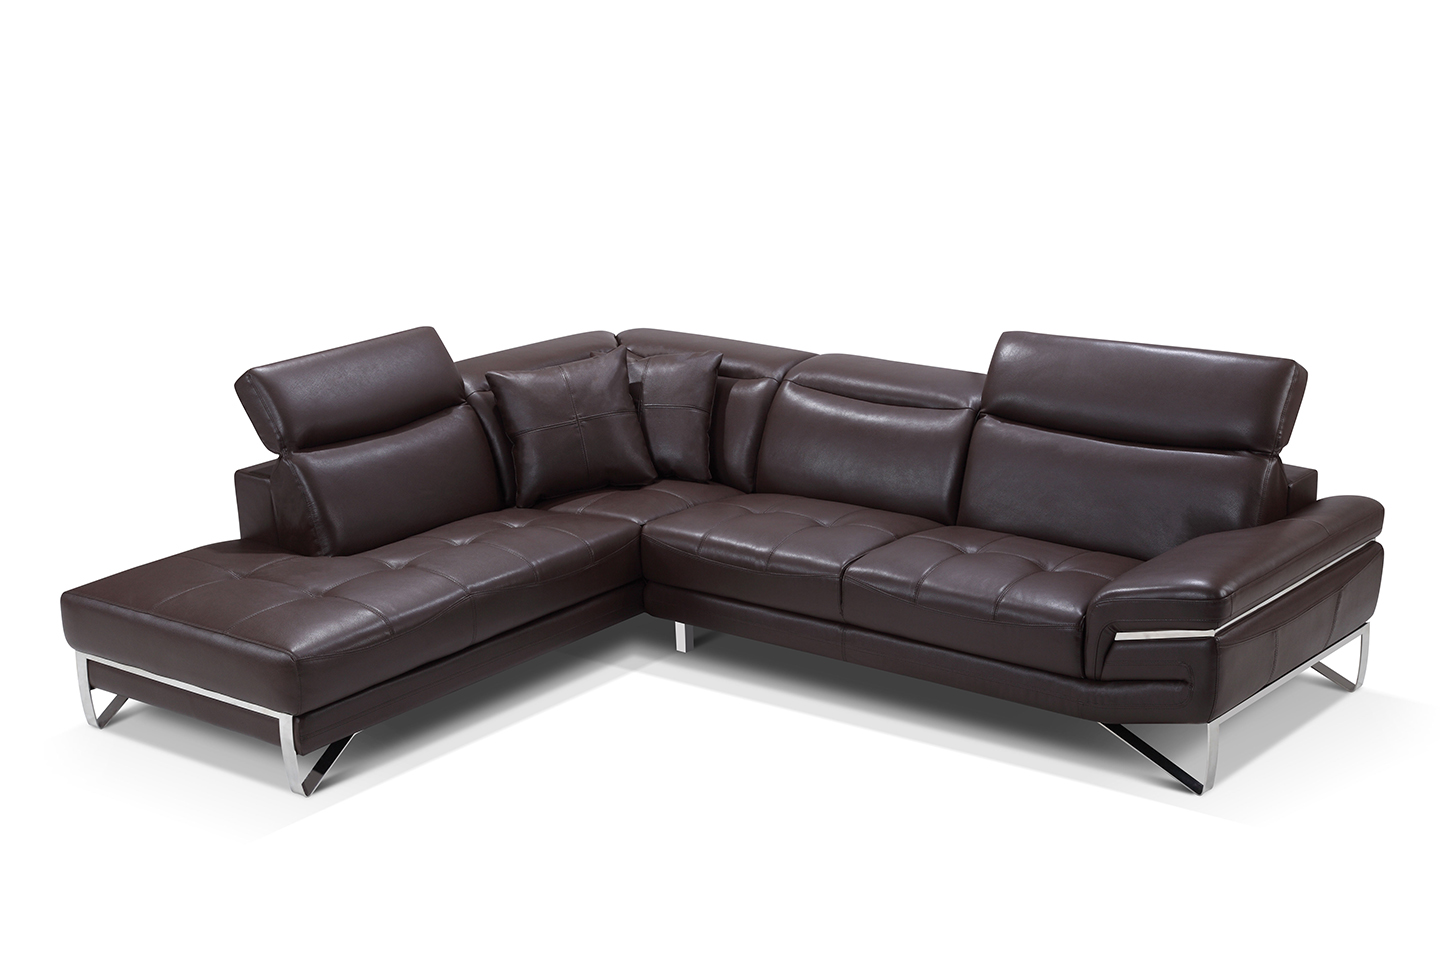 stylish curved sectional sofa in leather with pillows corpus christi esf 2194